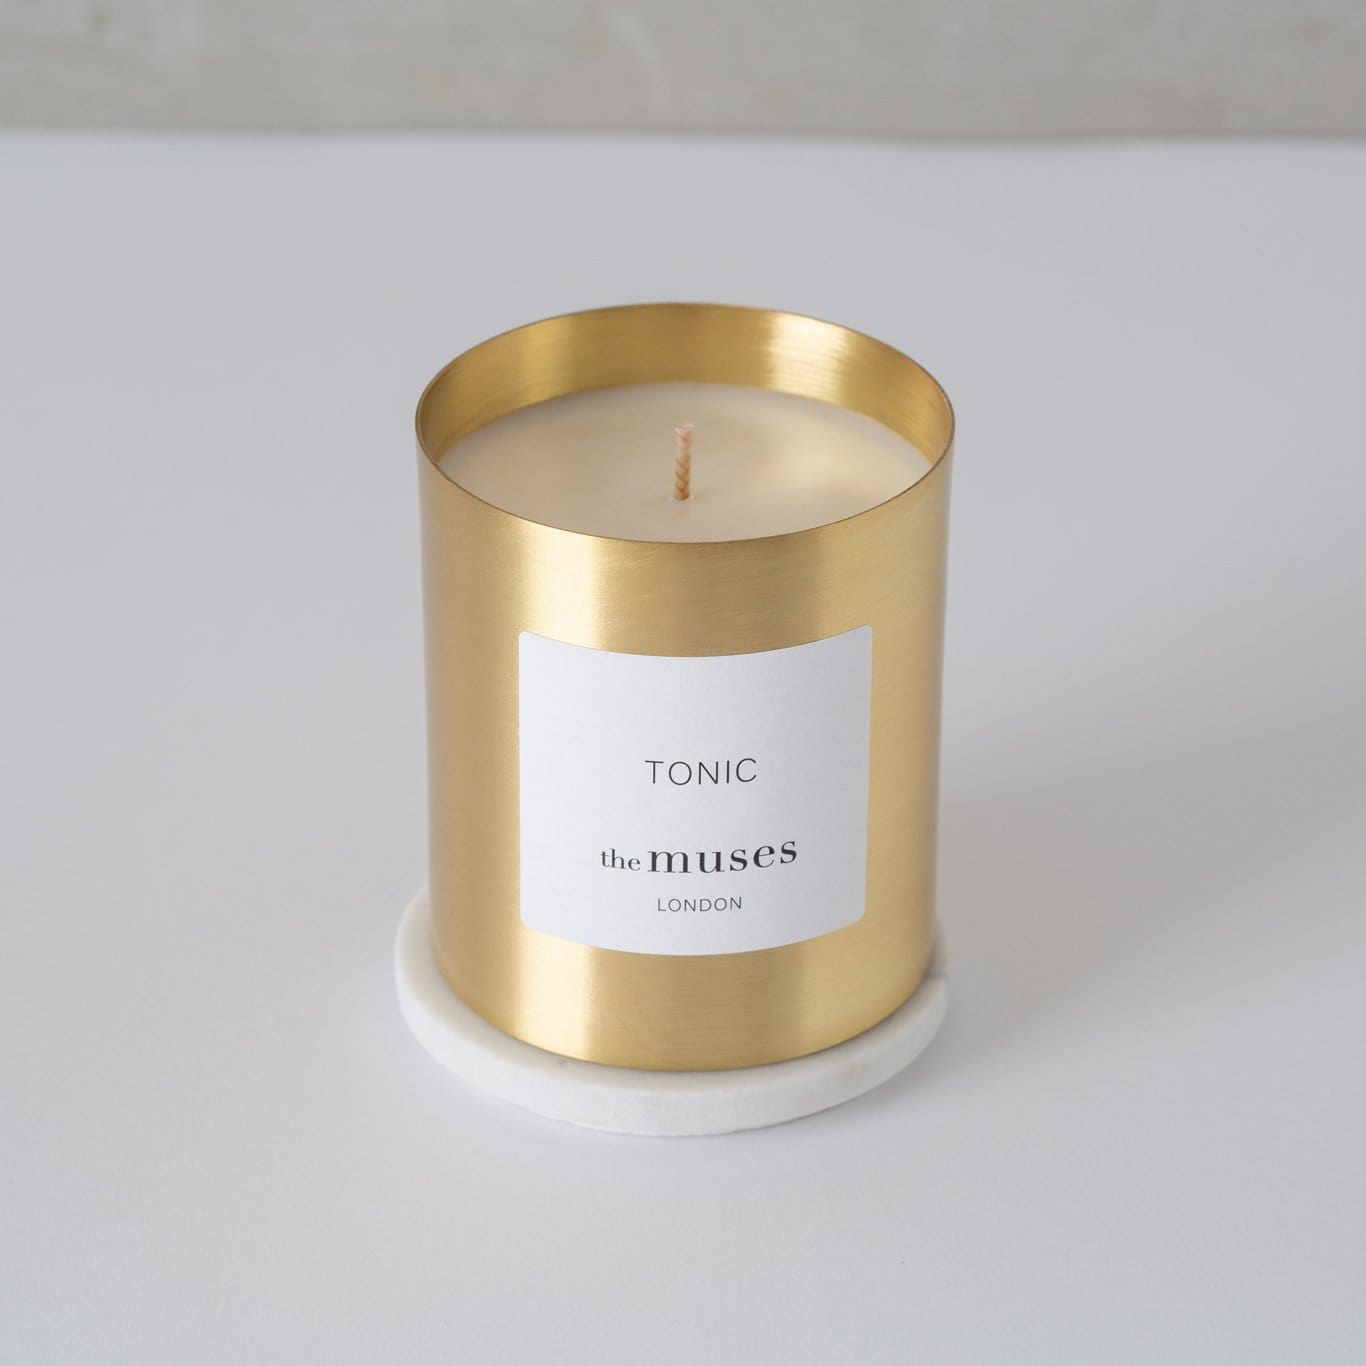 Tonic 100% natural wax candle in pure brass container on pure marble coaster. Front